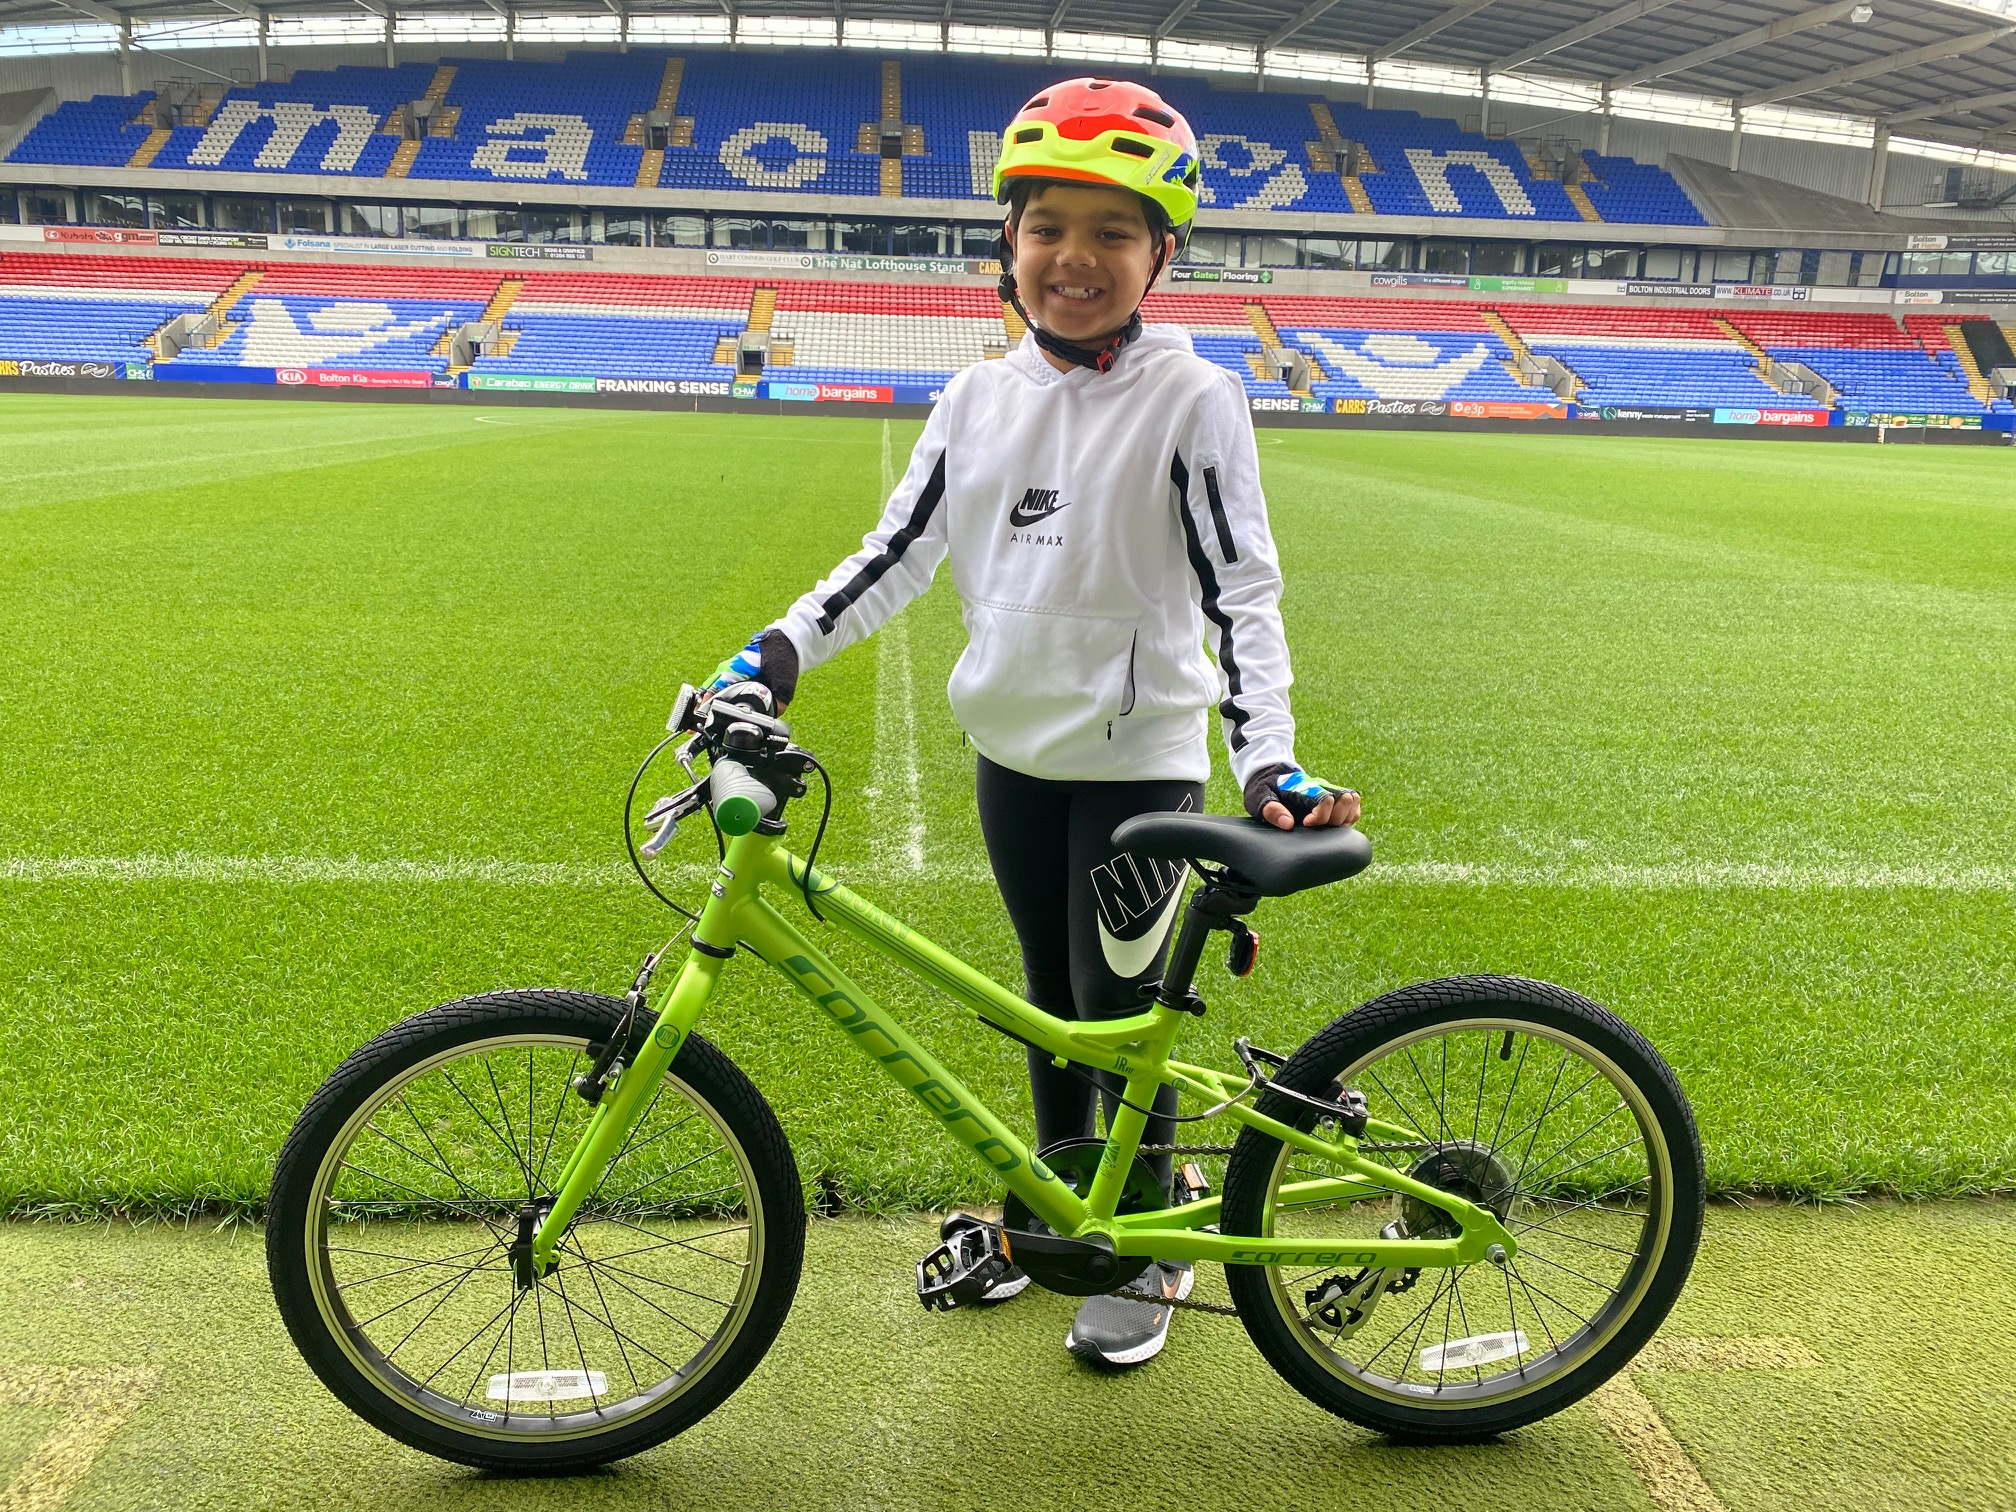 Combining his two favourite hobbies in the #FitforLit fundraising challenge, Milan cycled 50 laps a day – one lap for every book he read during lockdown – around the University of Bolton Stadium  till he reached the set target.